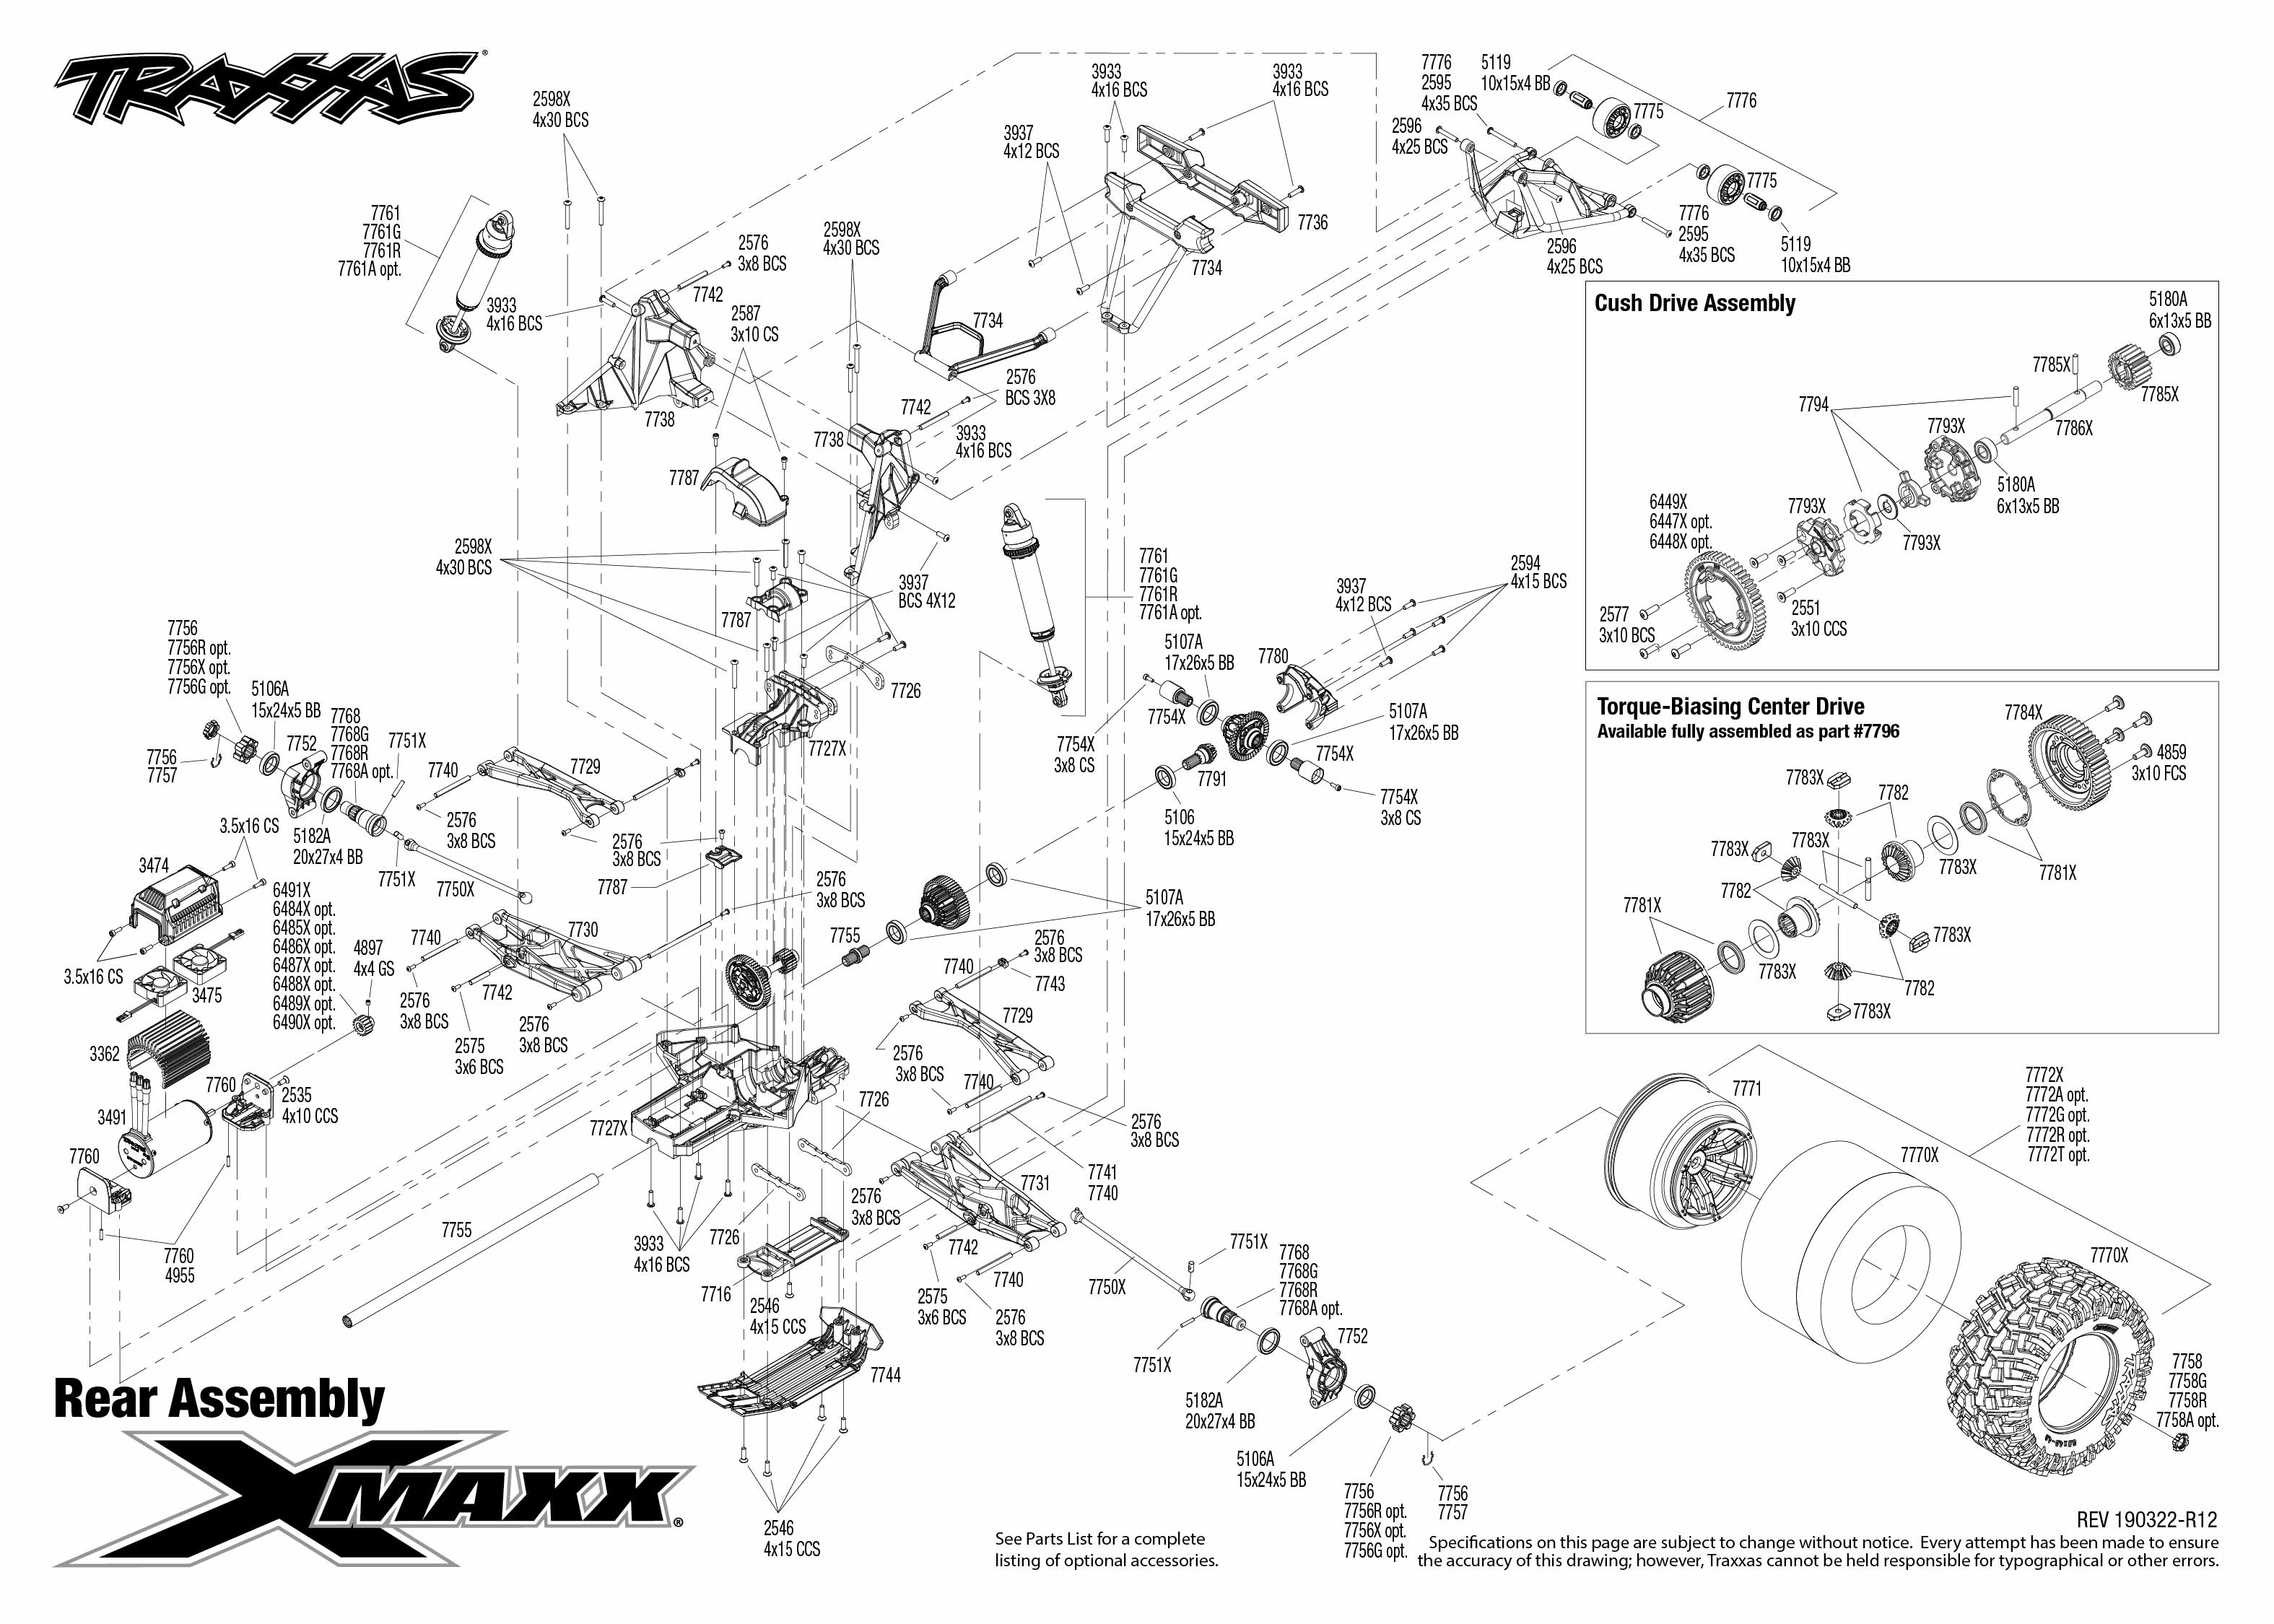 Traxxas X-Maxx 4WD RTR 8s-Capable Brushless 1/5 Monster